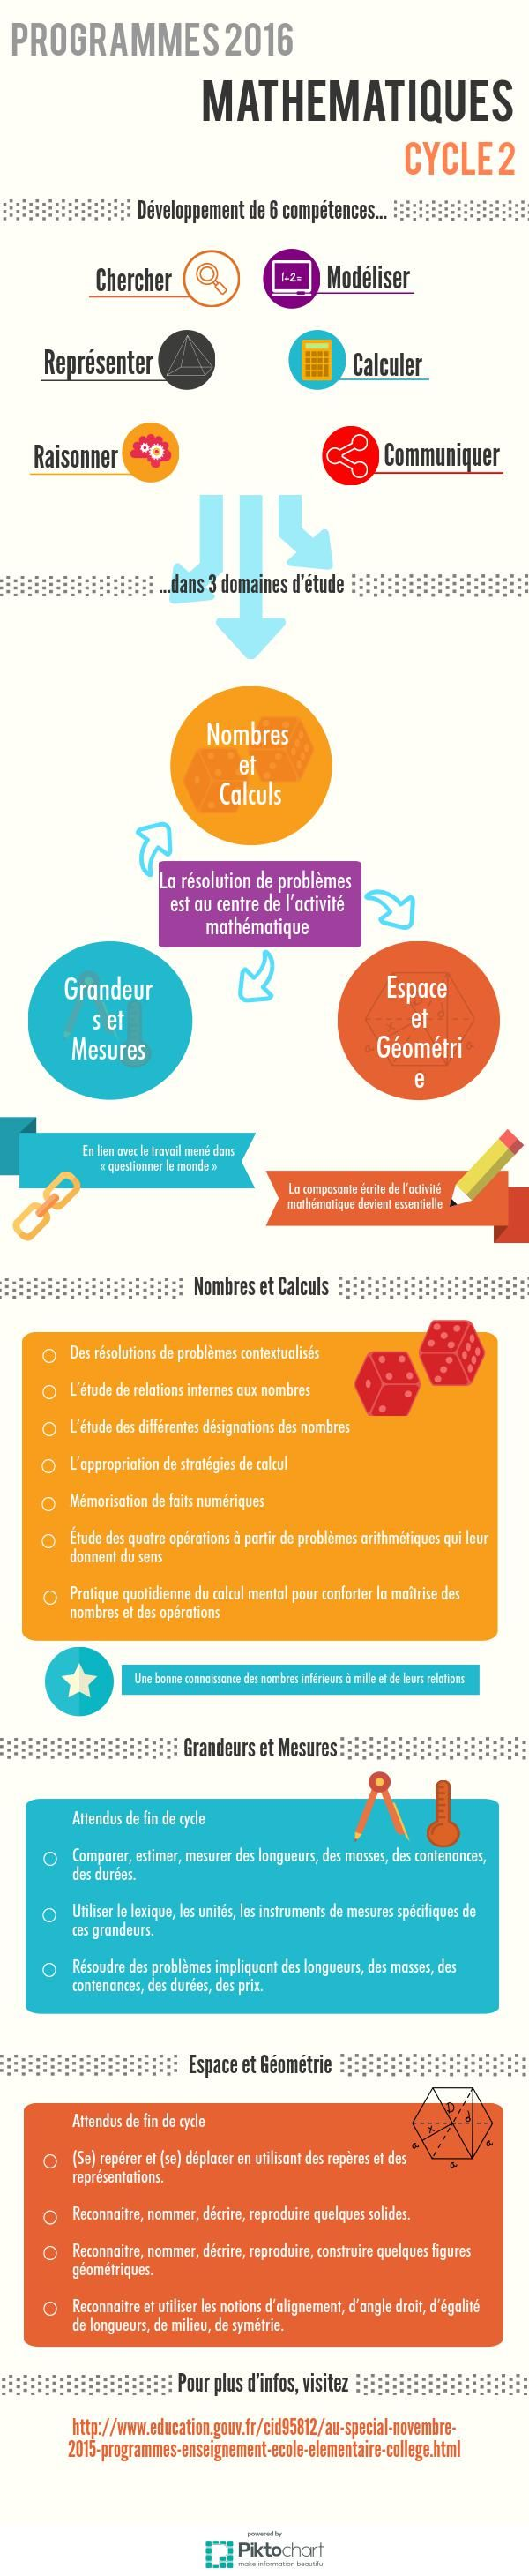 Focus Maths Cycle 2   Piktochart Infographic Editor